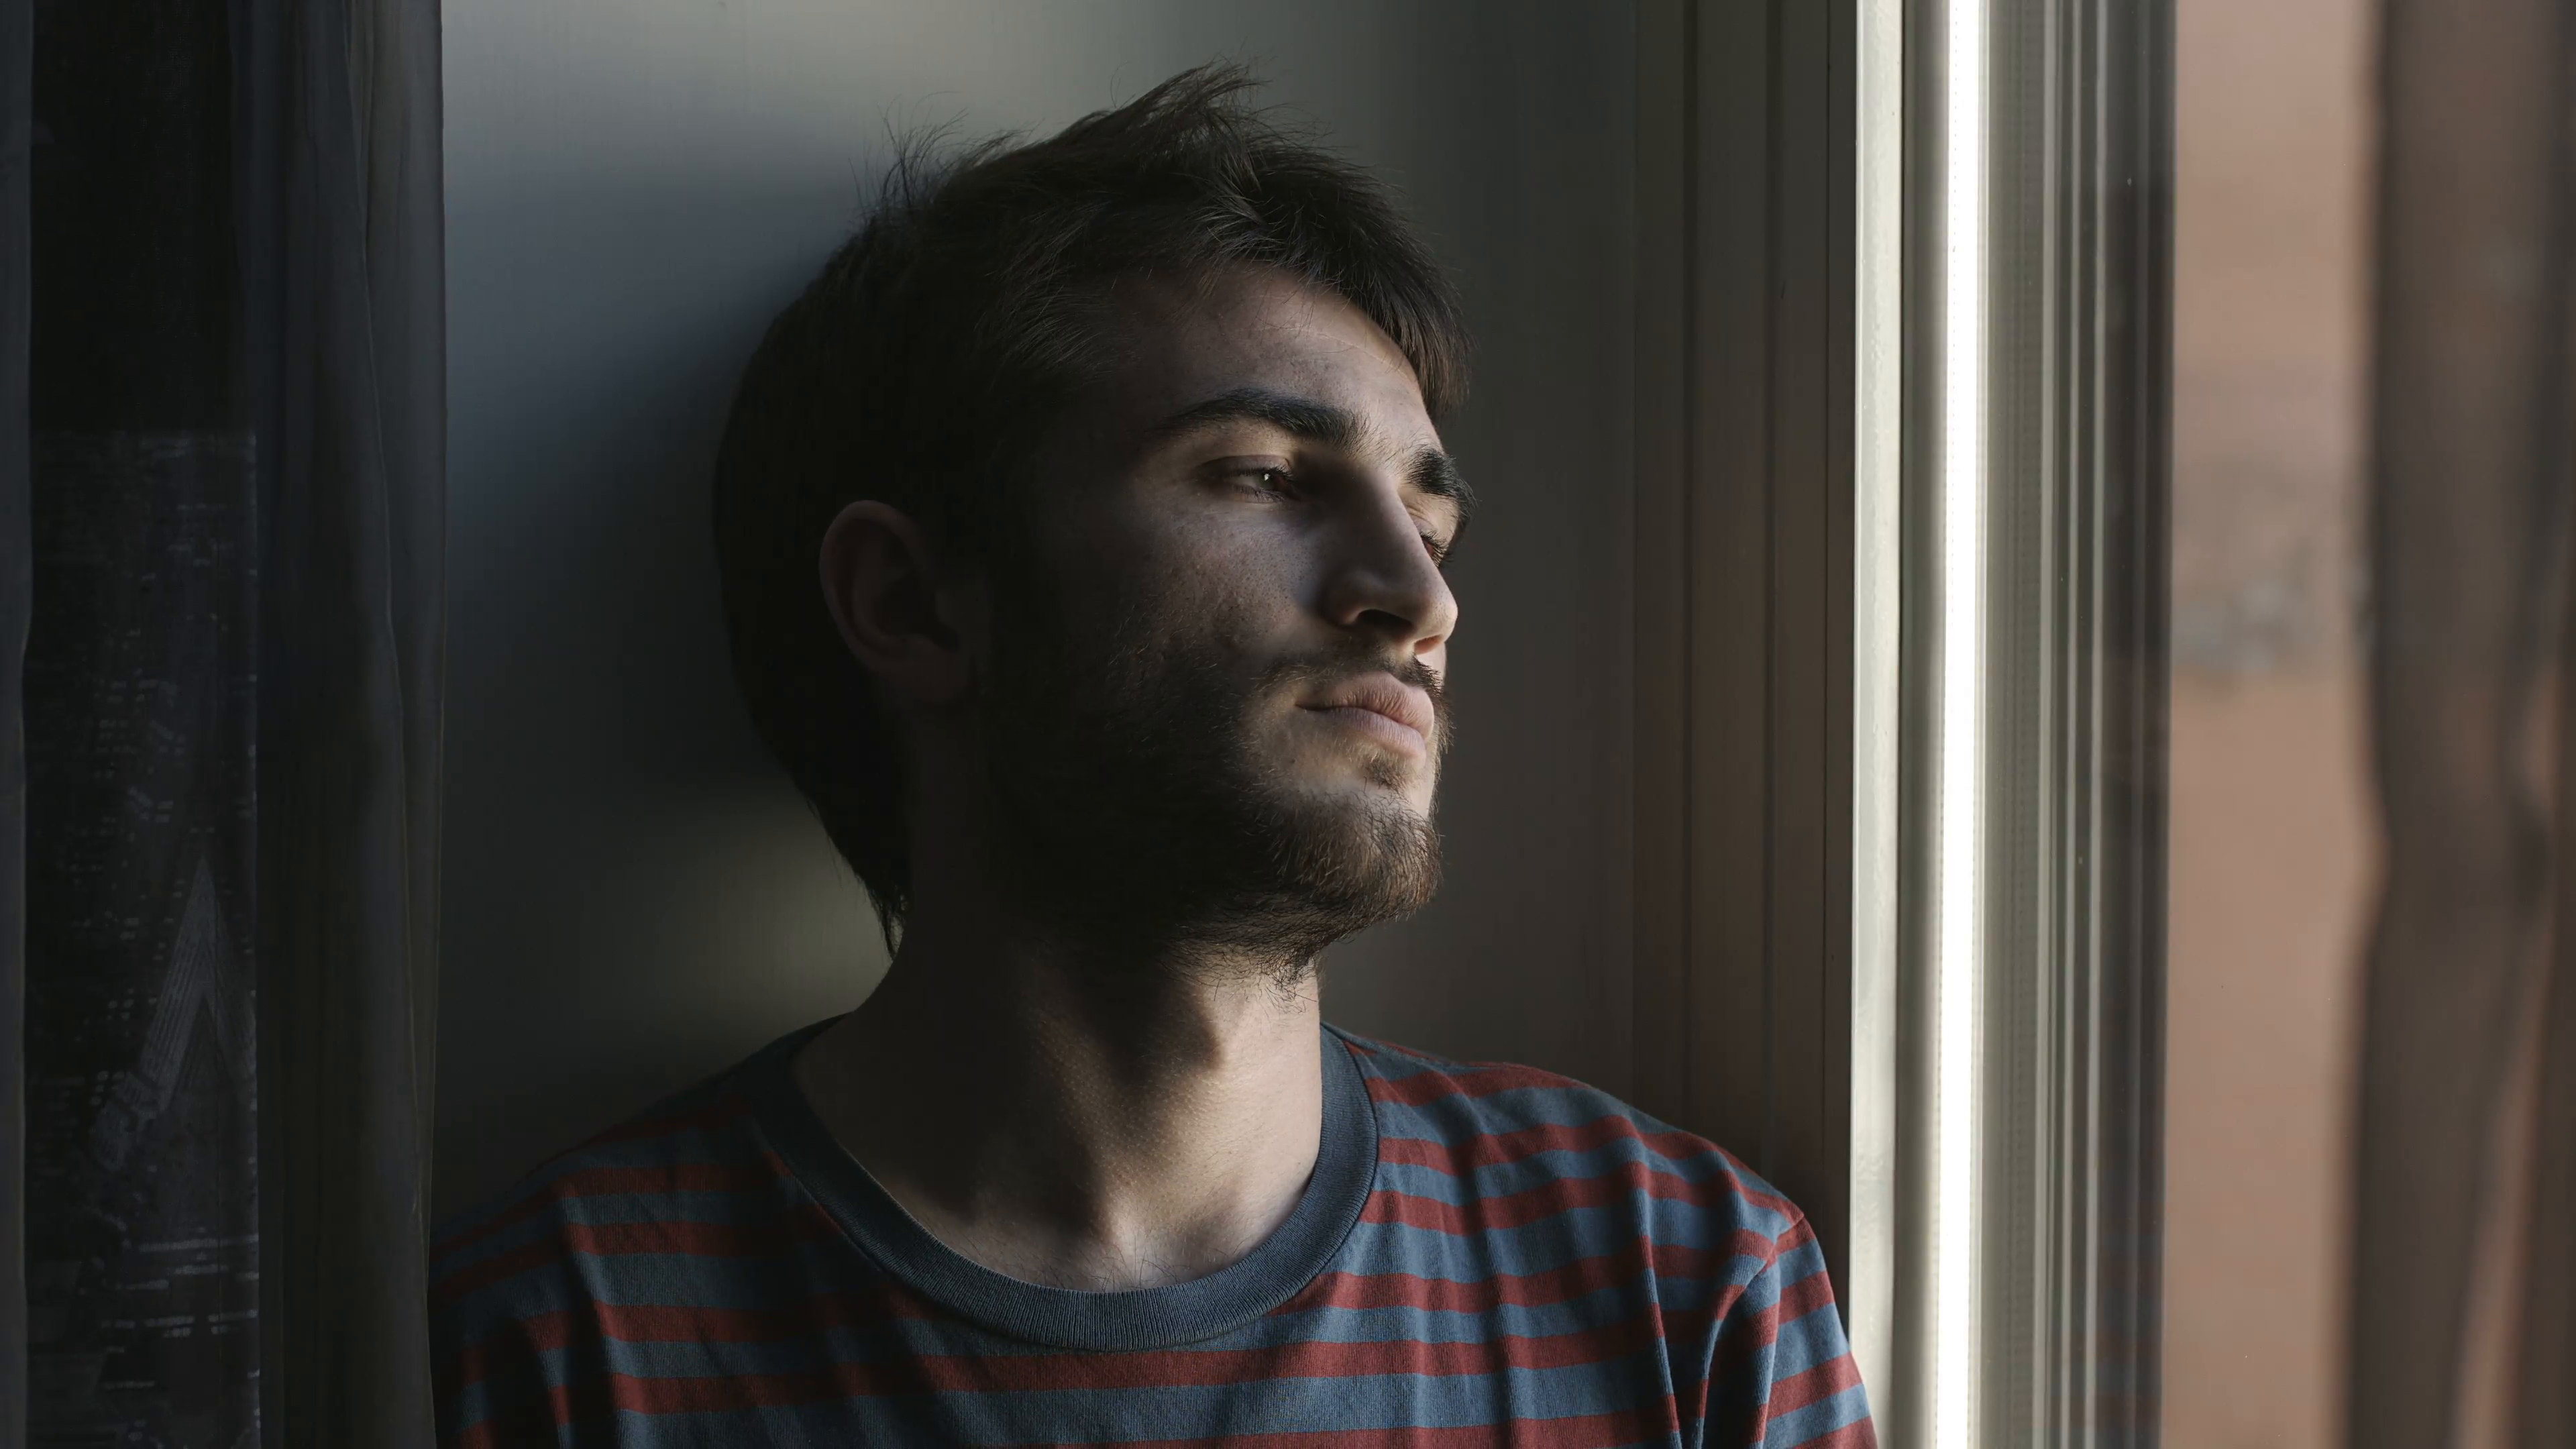 portrait-of-handsome-young-sad-man-in-front-of-a-window-4k_emzzbinke_f0000.png